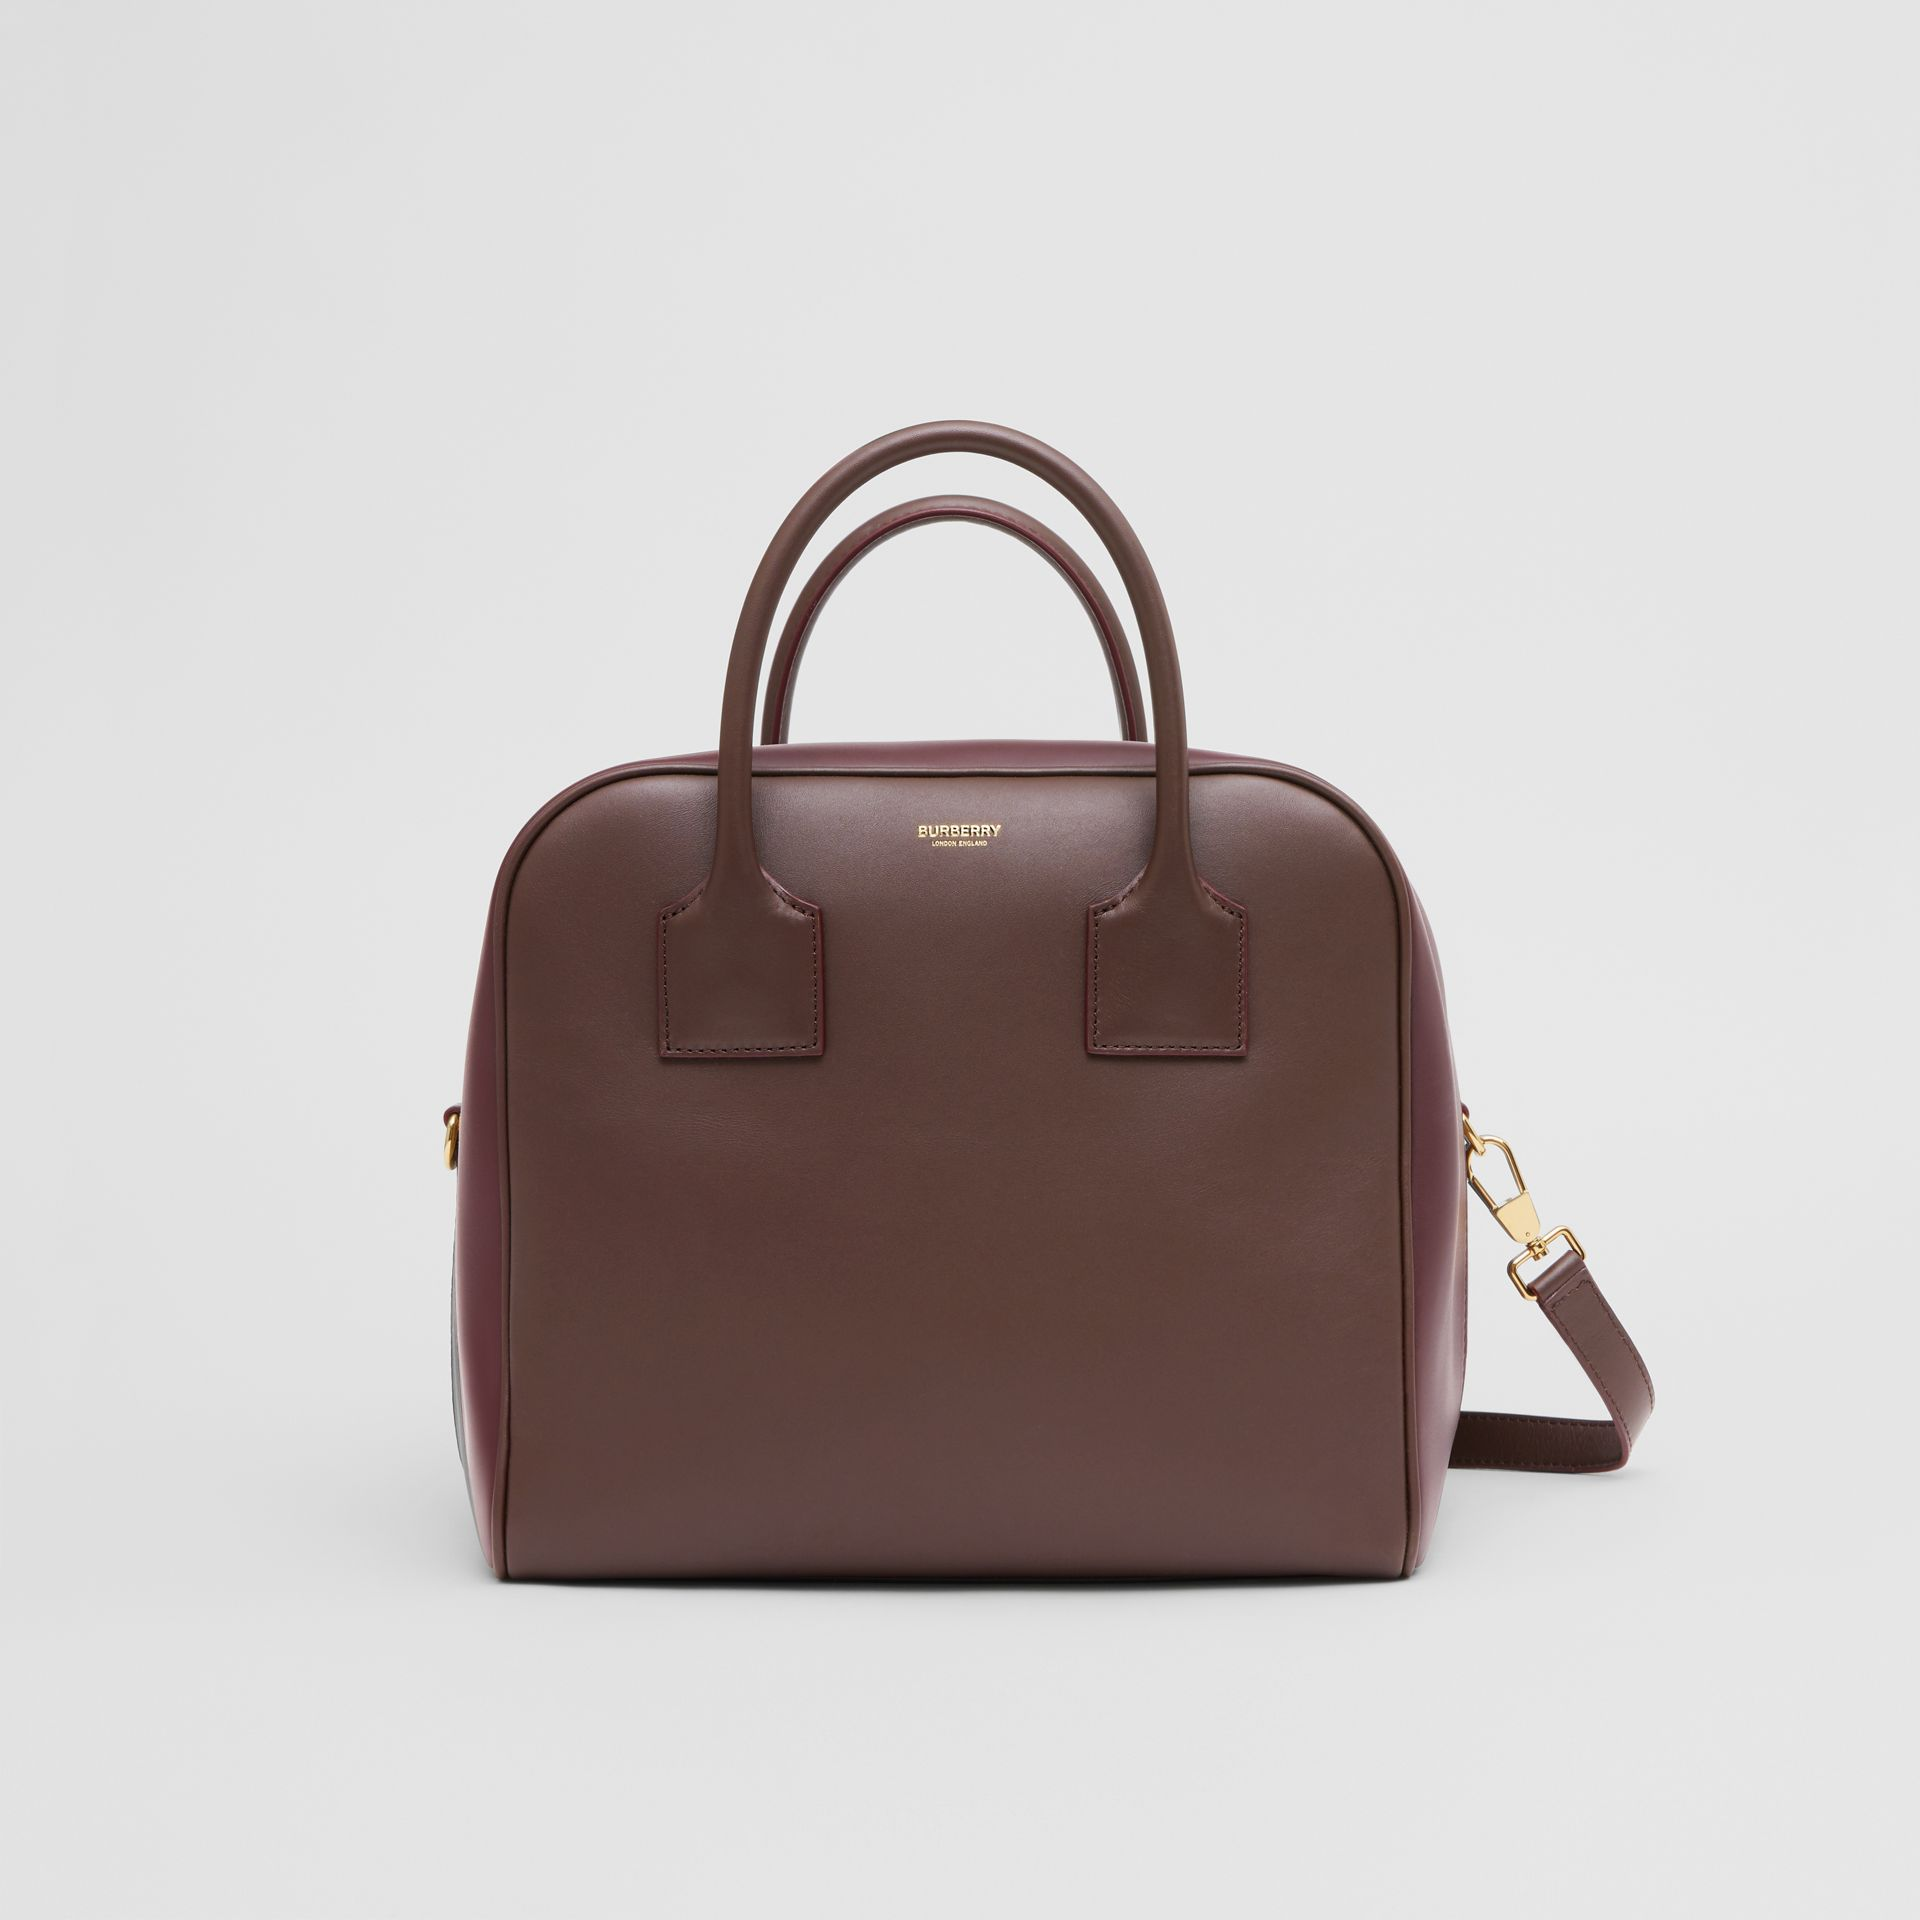 Medium Leather and Suede Cube Bag in Mahogany - Women | Burberry United States - gallery image 0